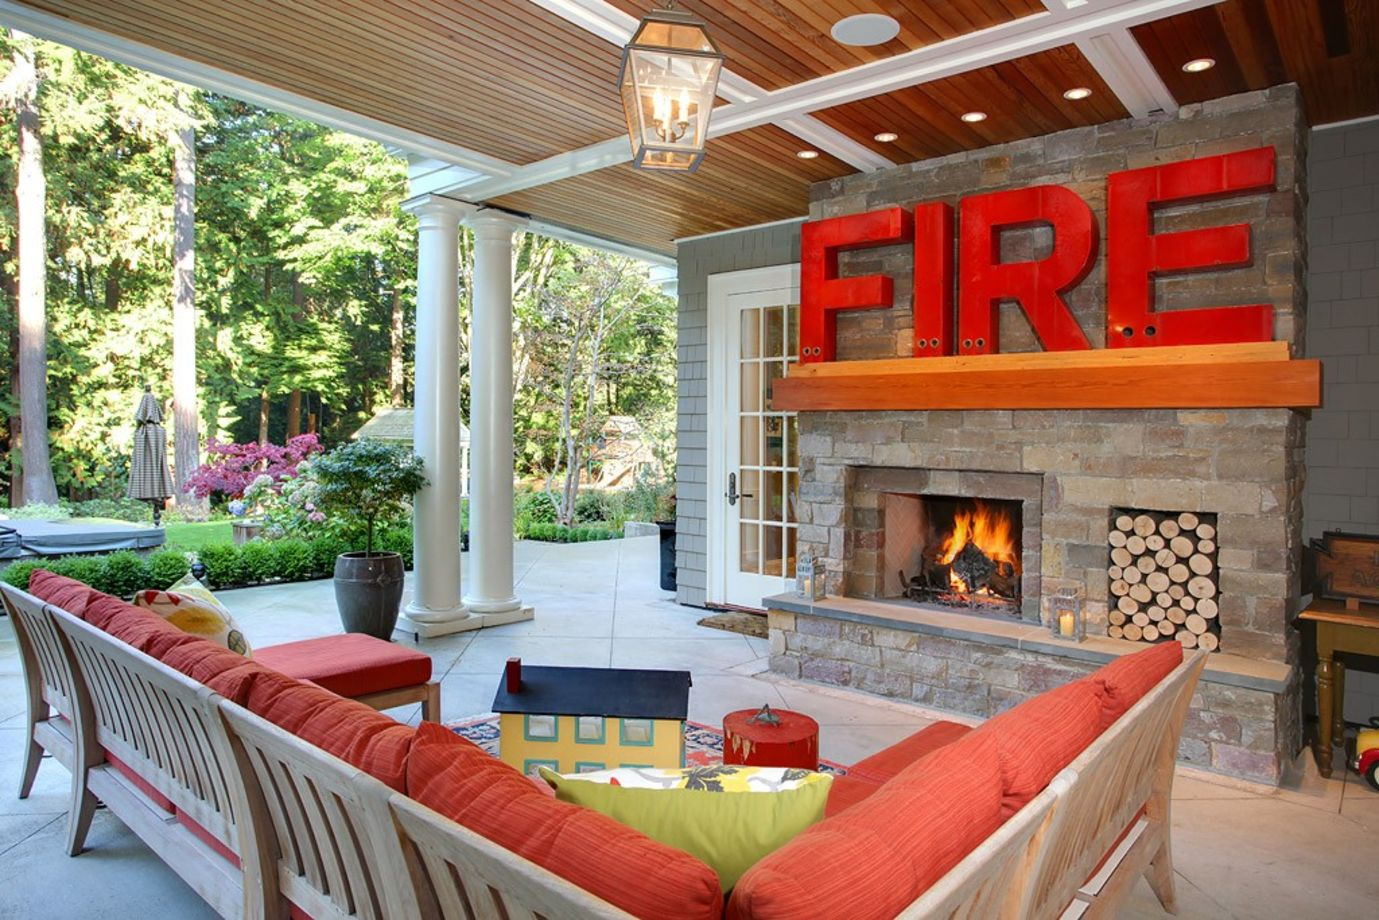 outdoor living 8 ideas to get the most out of your space porch